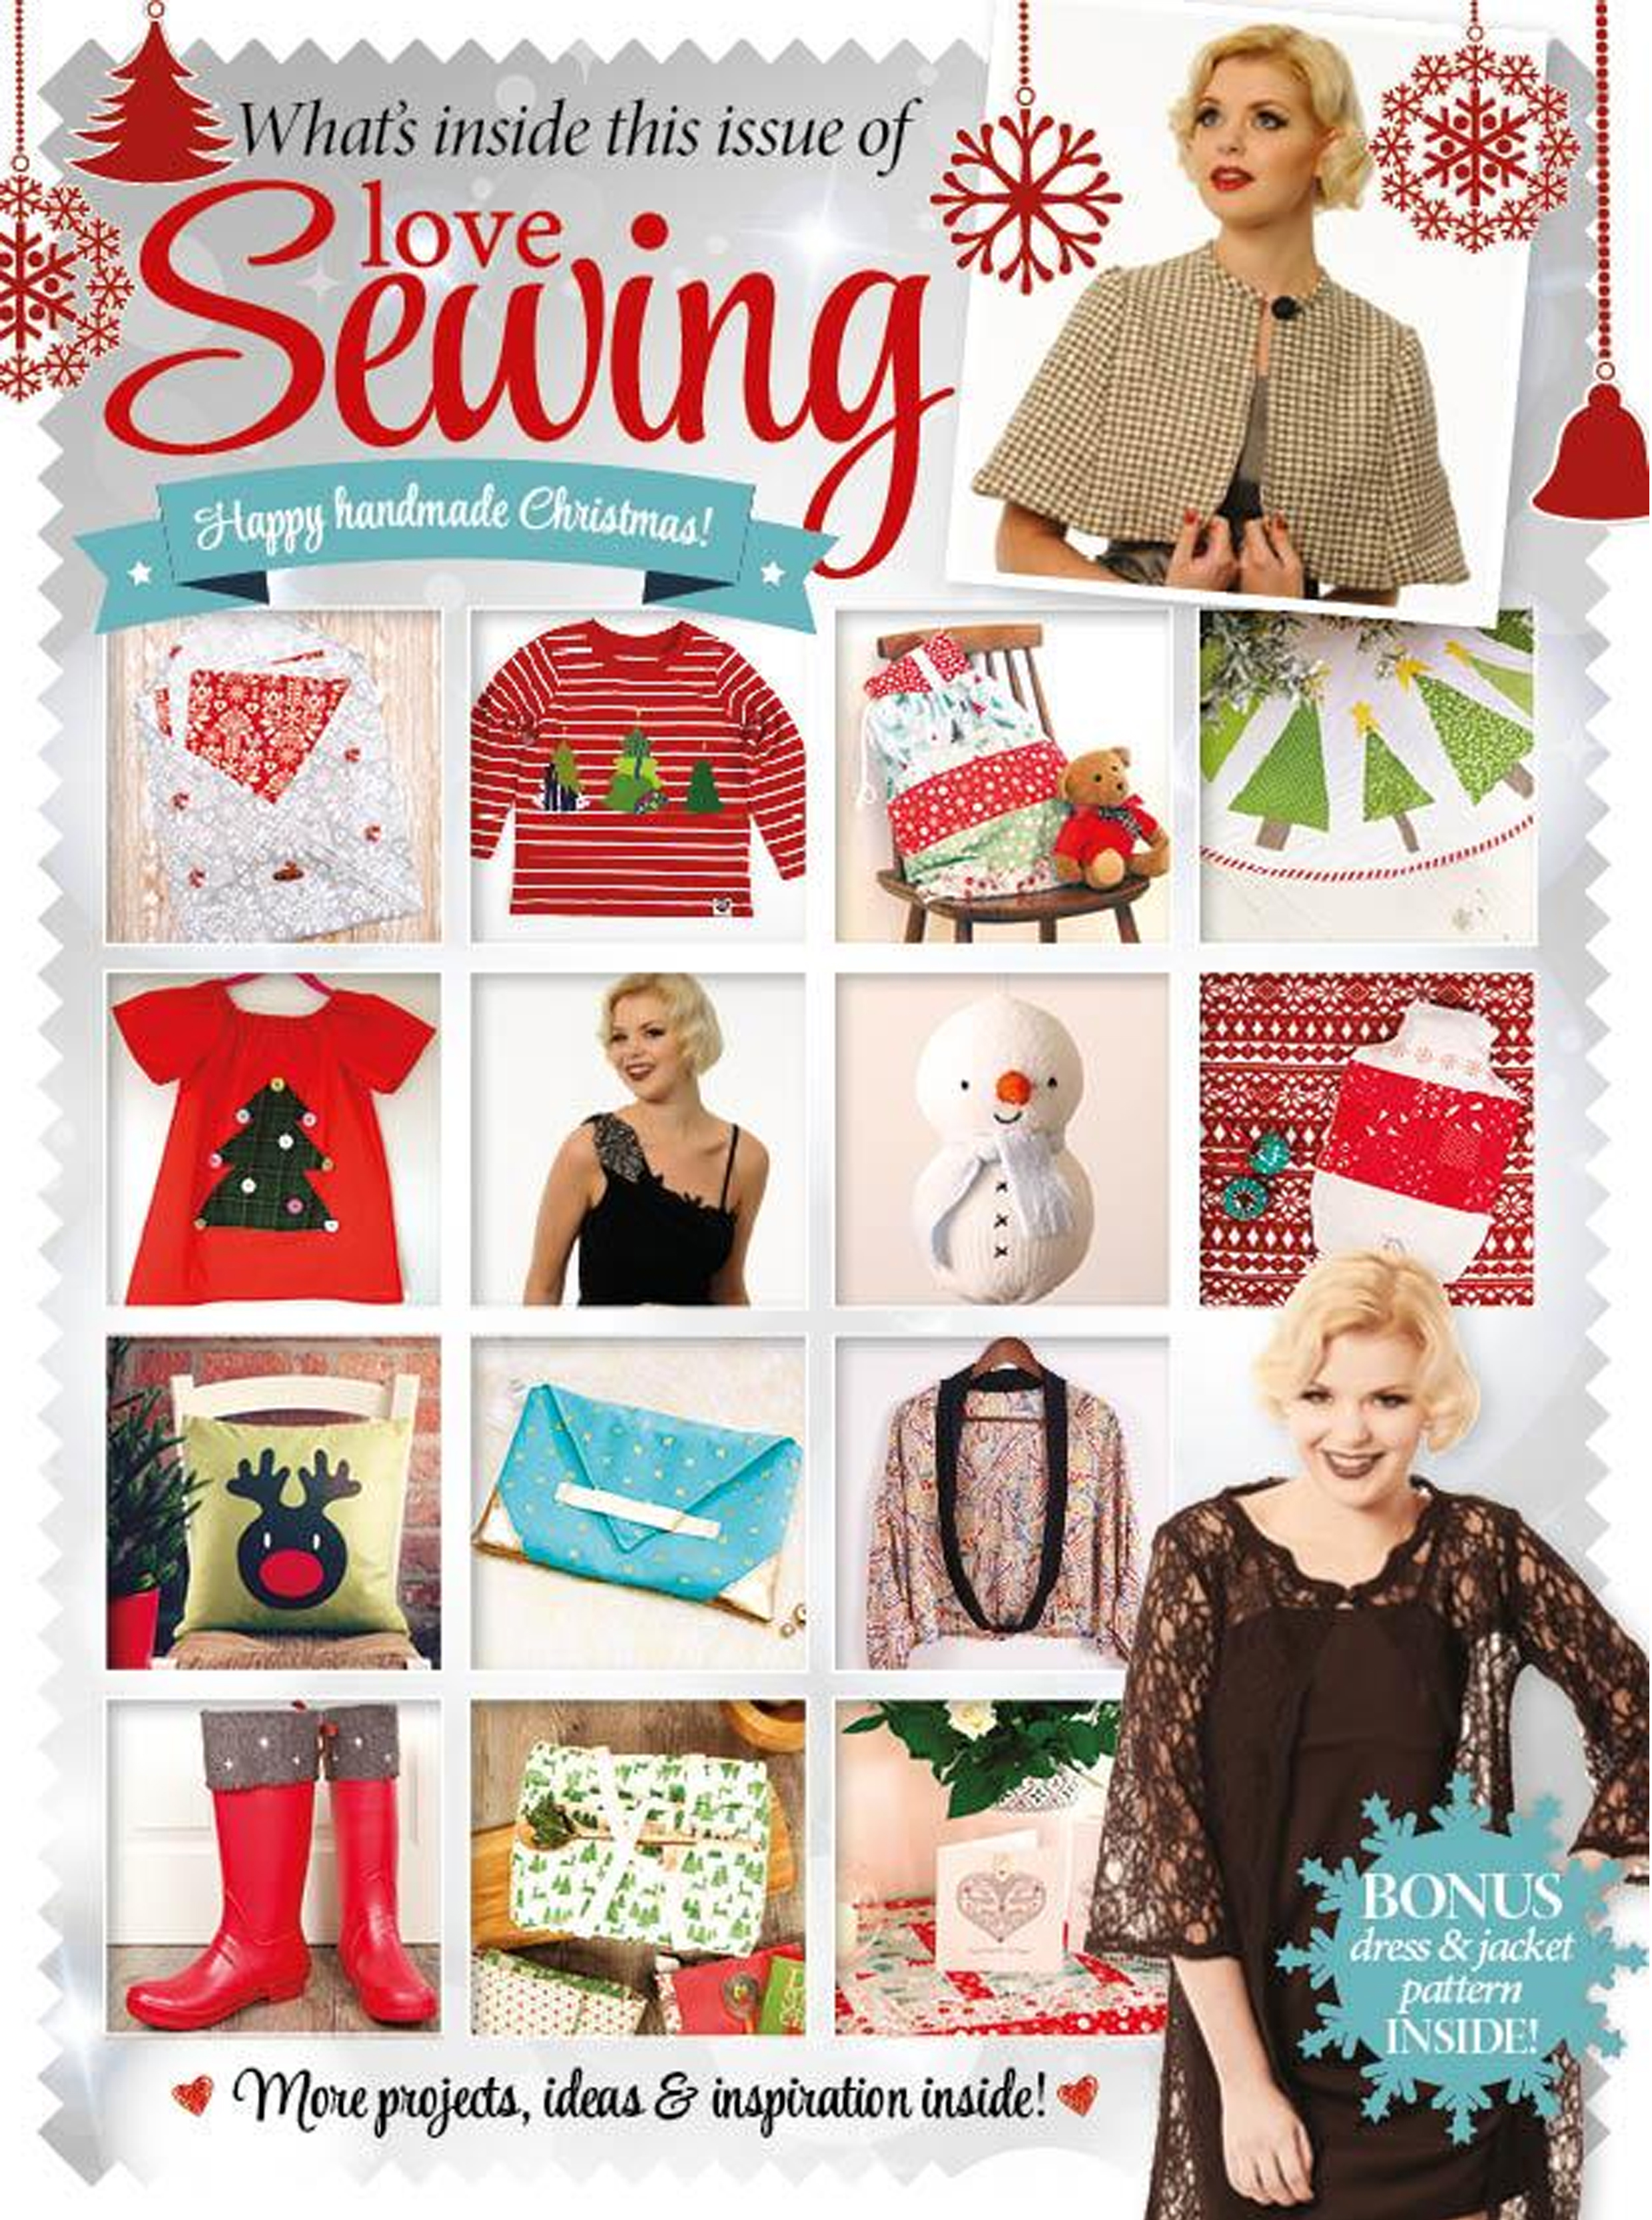 Love Sewing Issue 8 Whats Inside